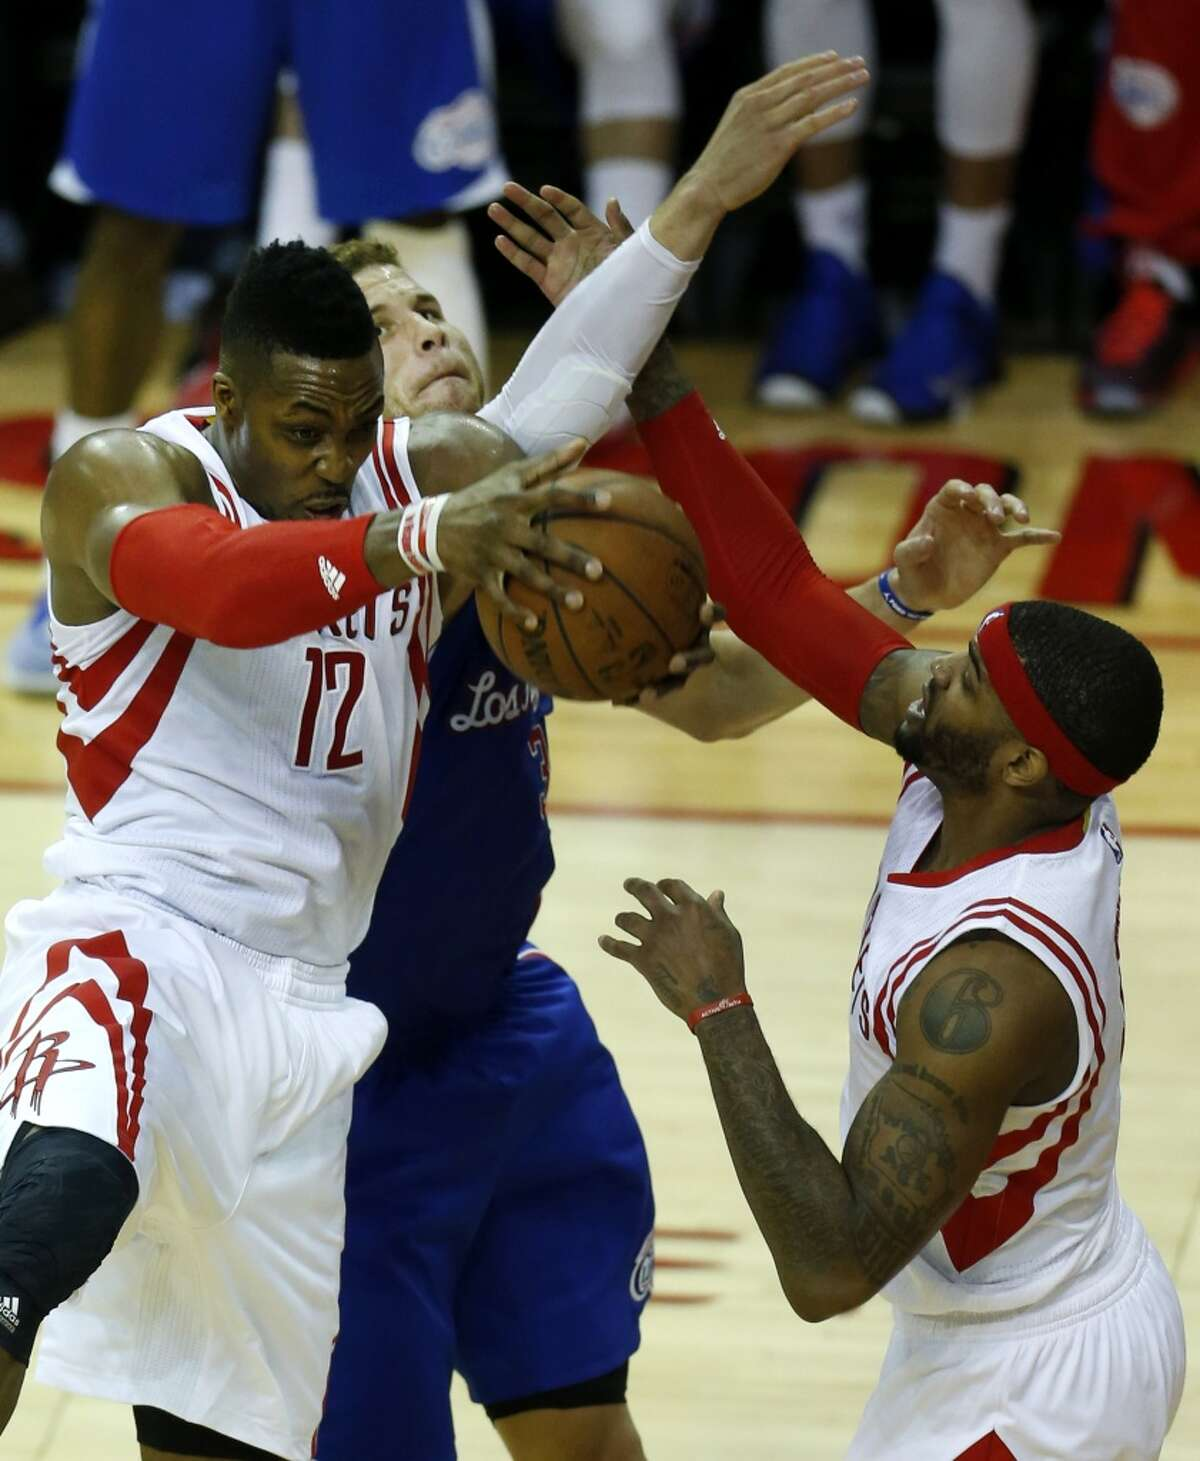 Houston Rockets center Dwight Howard (12) pulls down a rebound against Los Angeles Clippers forward Blake Griffin (32), with Rockets forward Josh Smith (5) in on the play during the second quarter of Game 7 of the NBA Western Conference semifinals at Toyota Center on Sunday, May 17, 2015, in Houston. ( Karen Warren / Houston Chronicle )